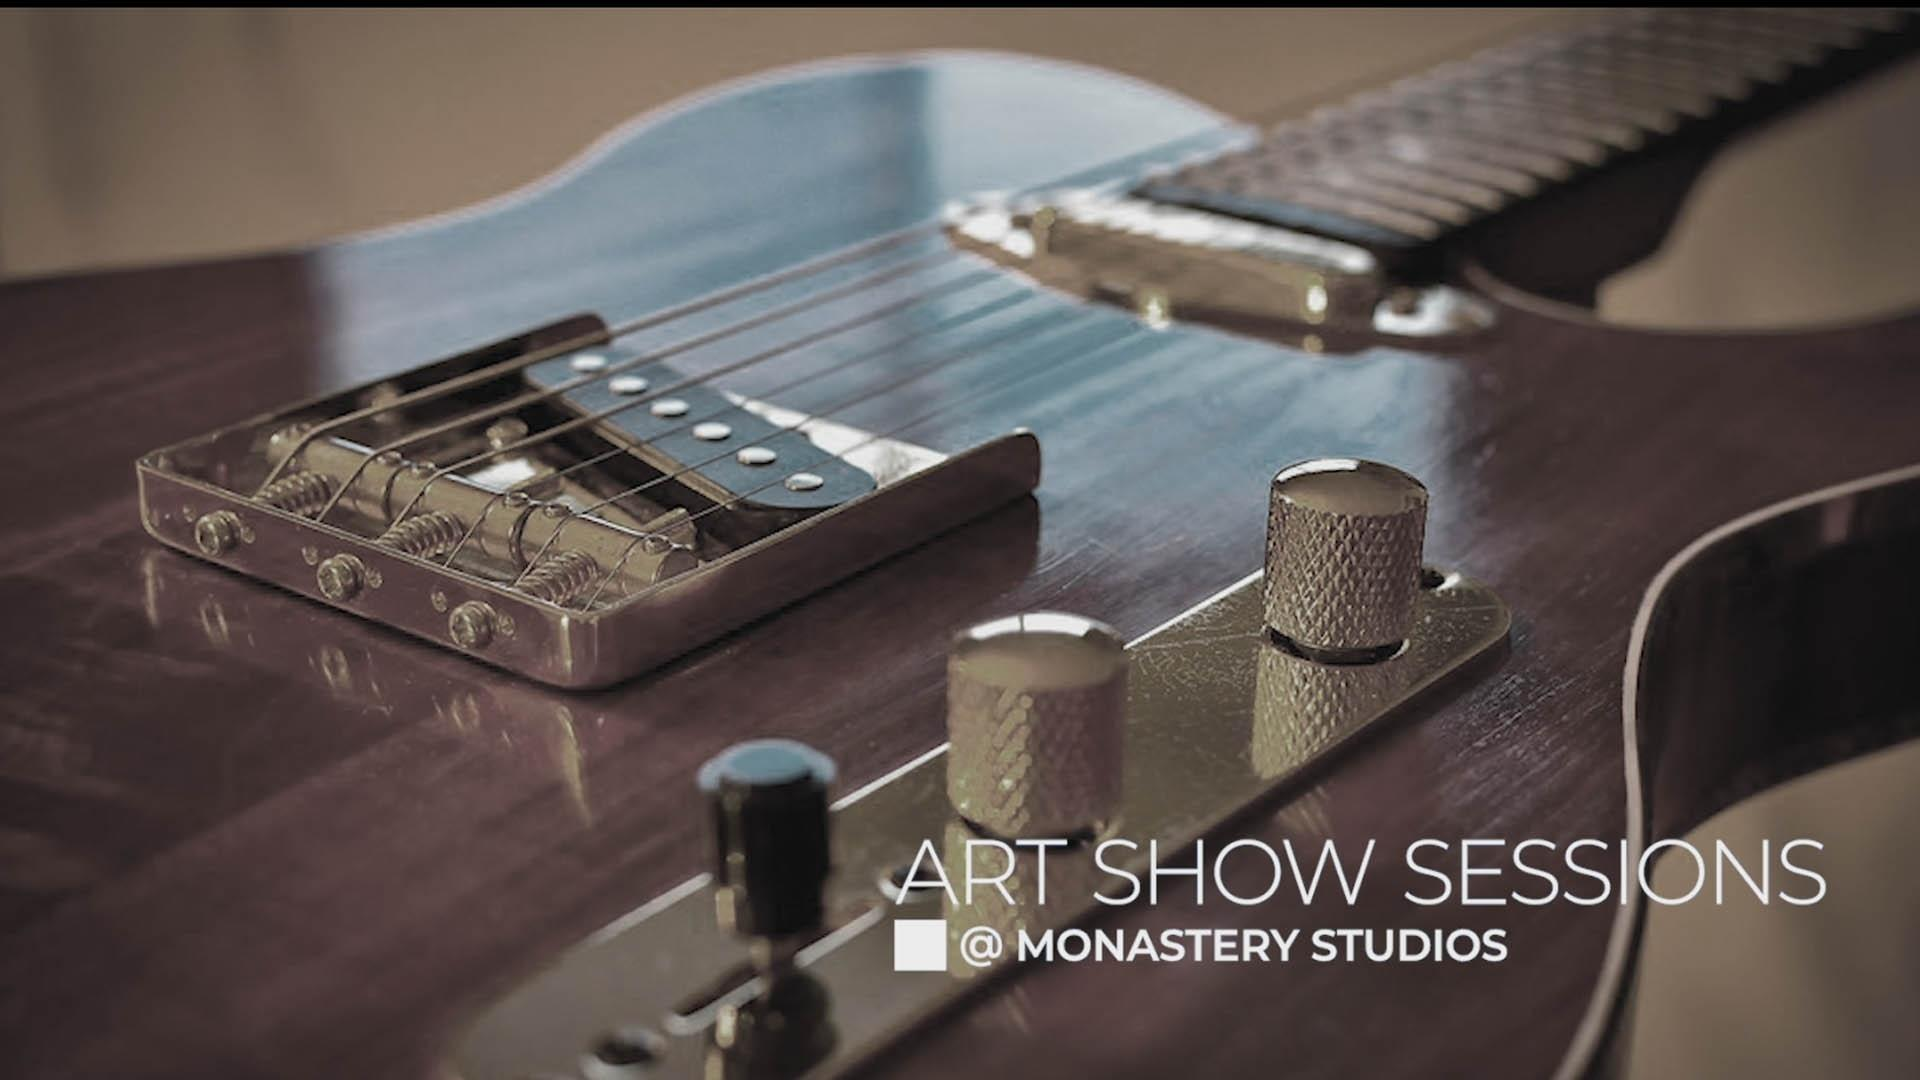 The Art Show Sessions